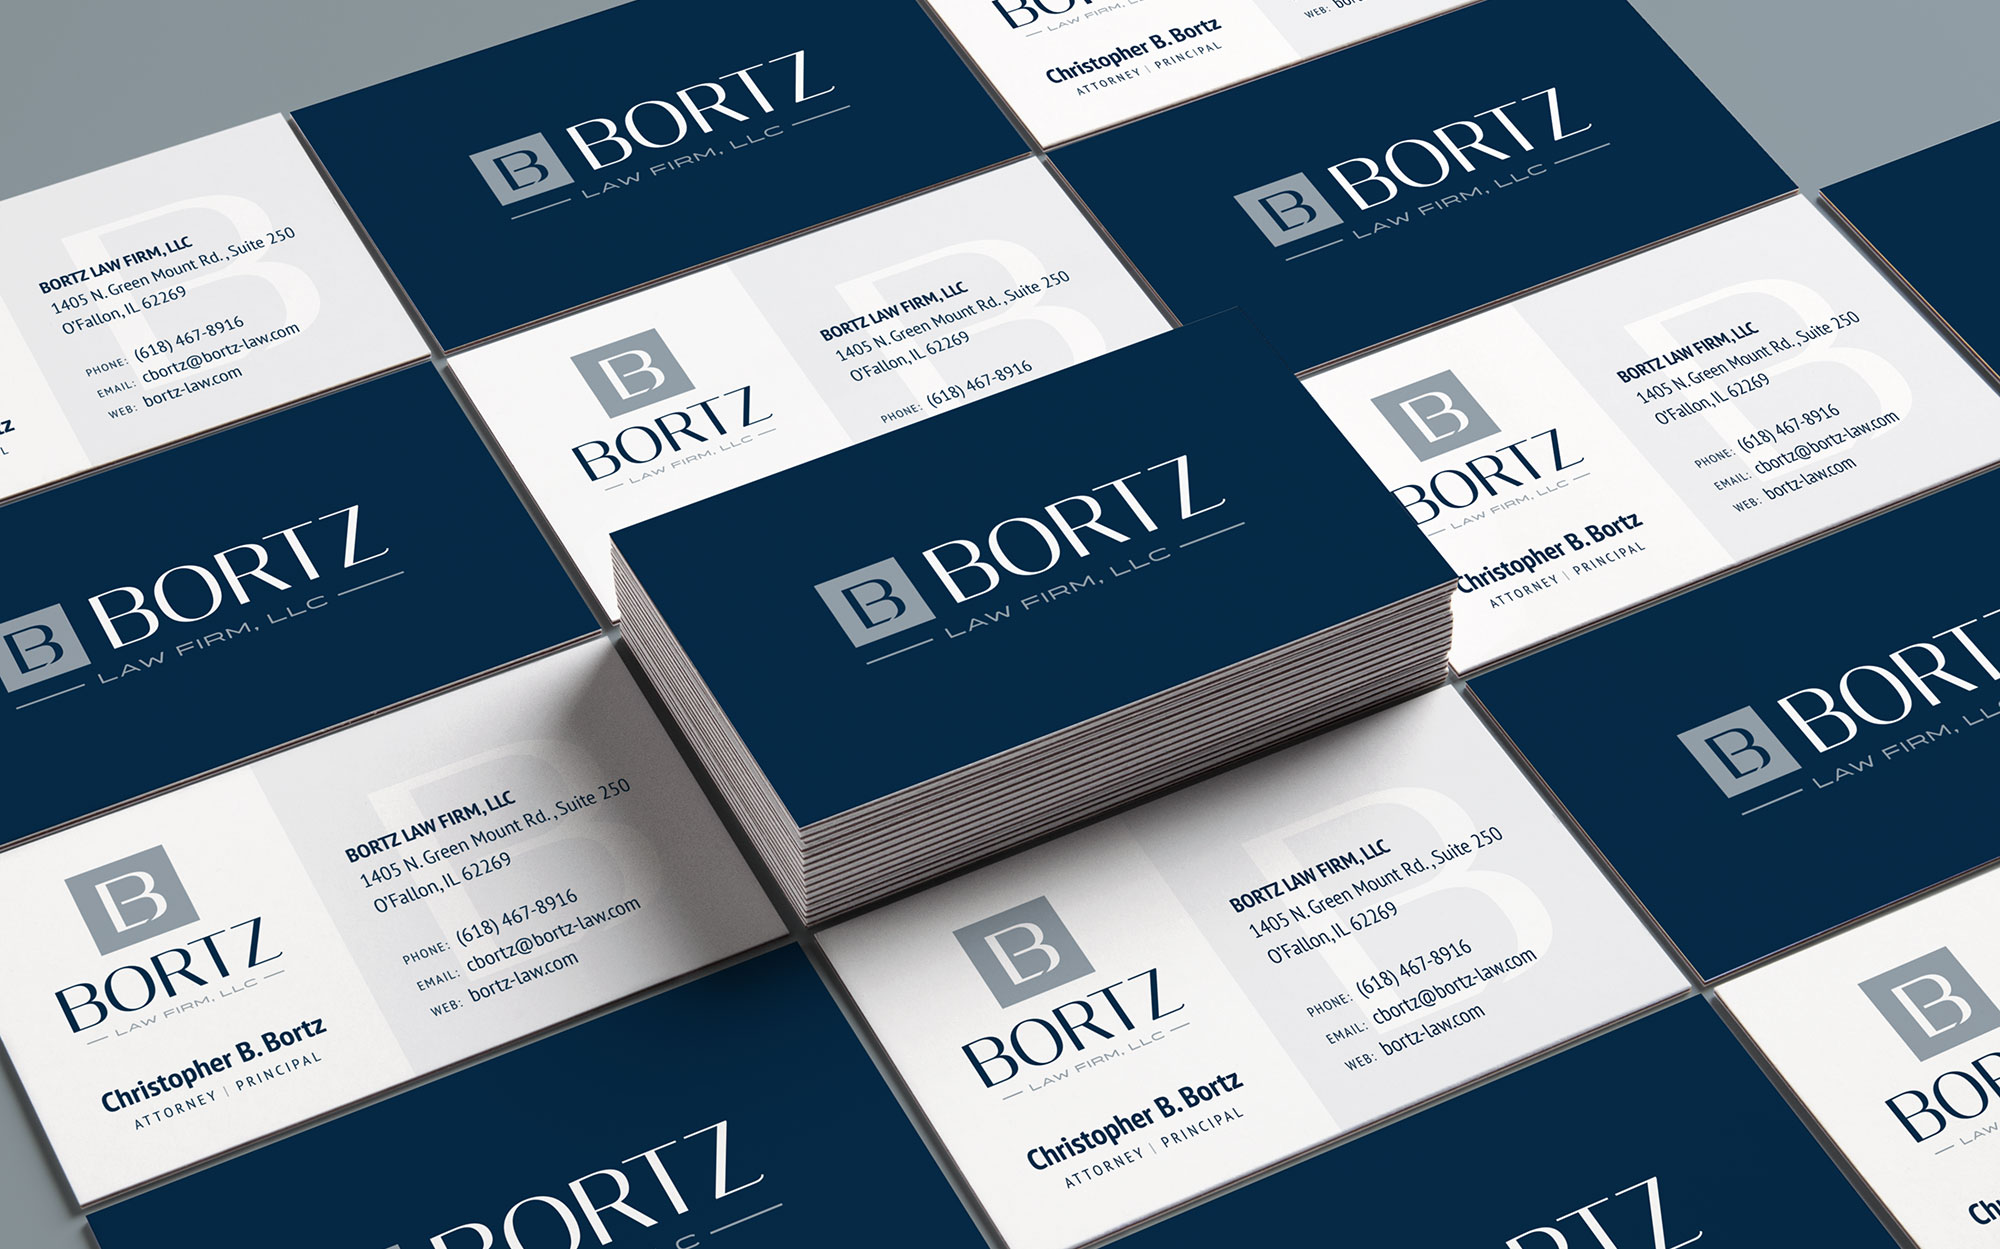 bortz business card design 2